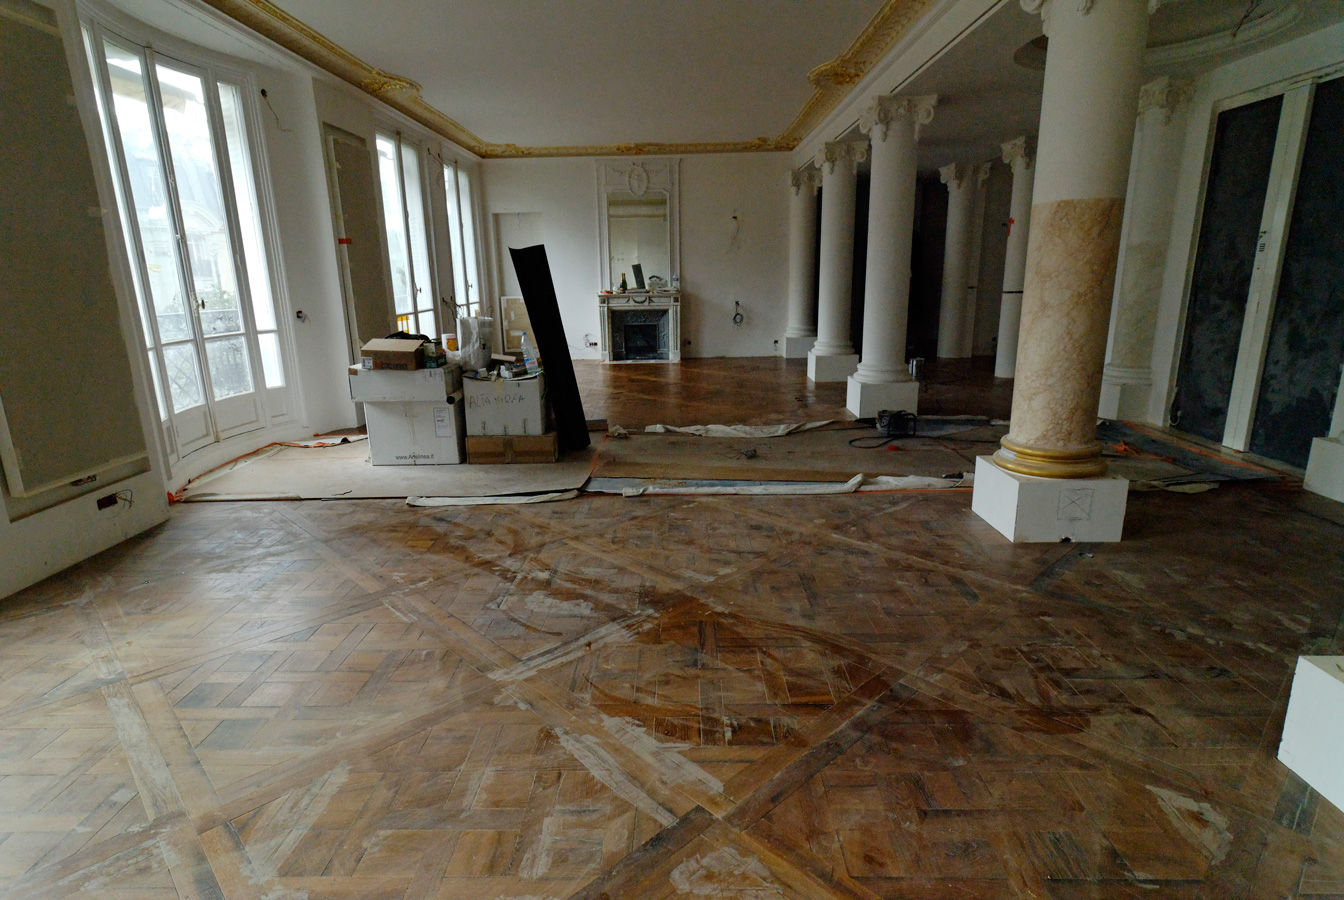 dalle parquet gerflor estimation cout travaux charleville m zi res soci t ktlyhs. Black Bedroom Furniture Sets. Home Design Ideas